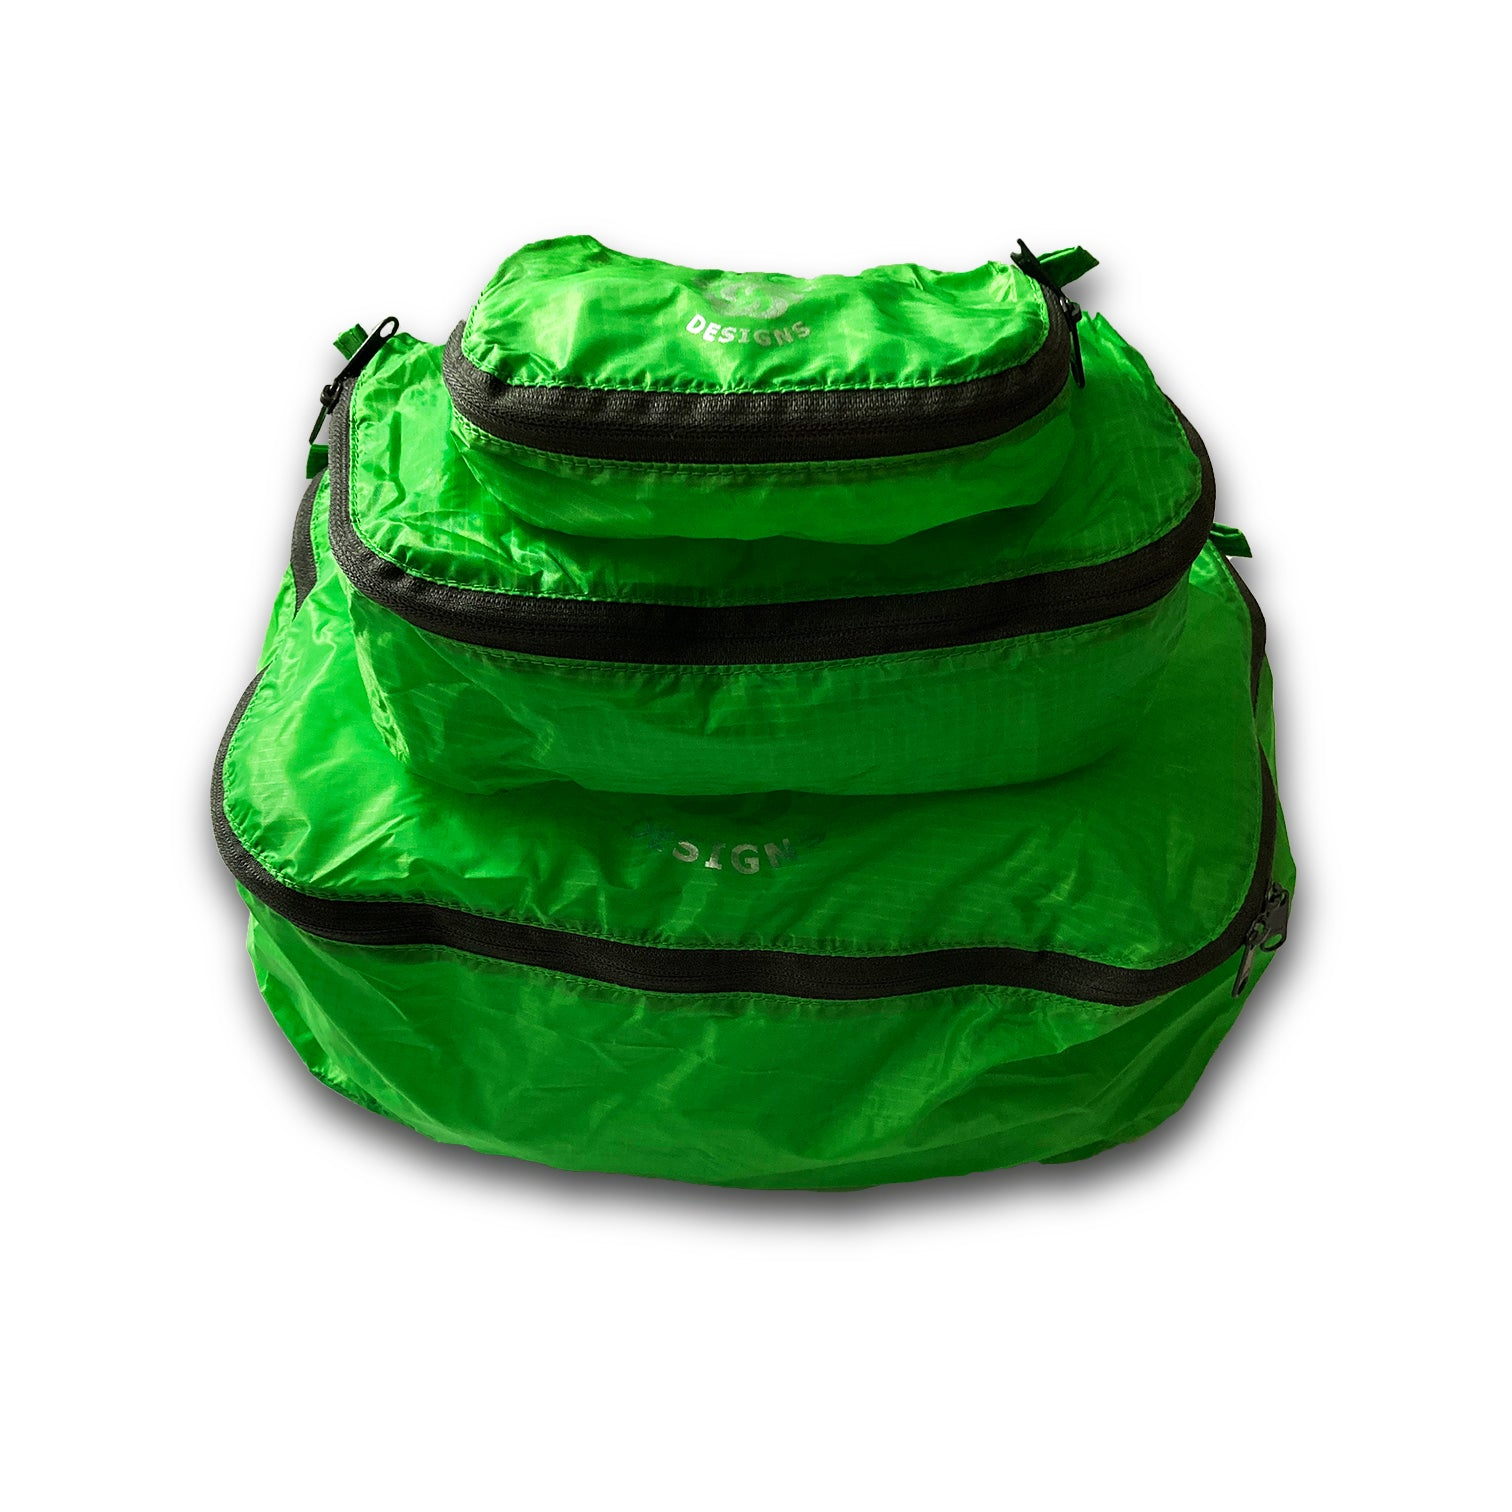 Green Six Moon Designs Pack Pod stuff sacks in all three sizes stacked